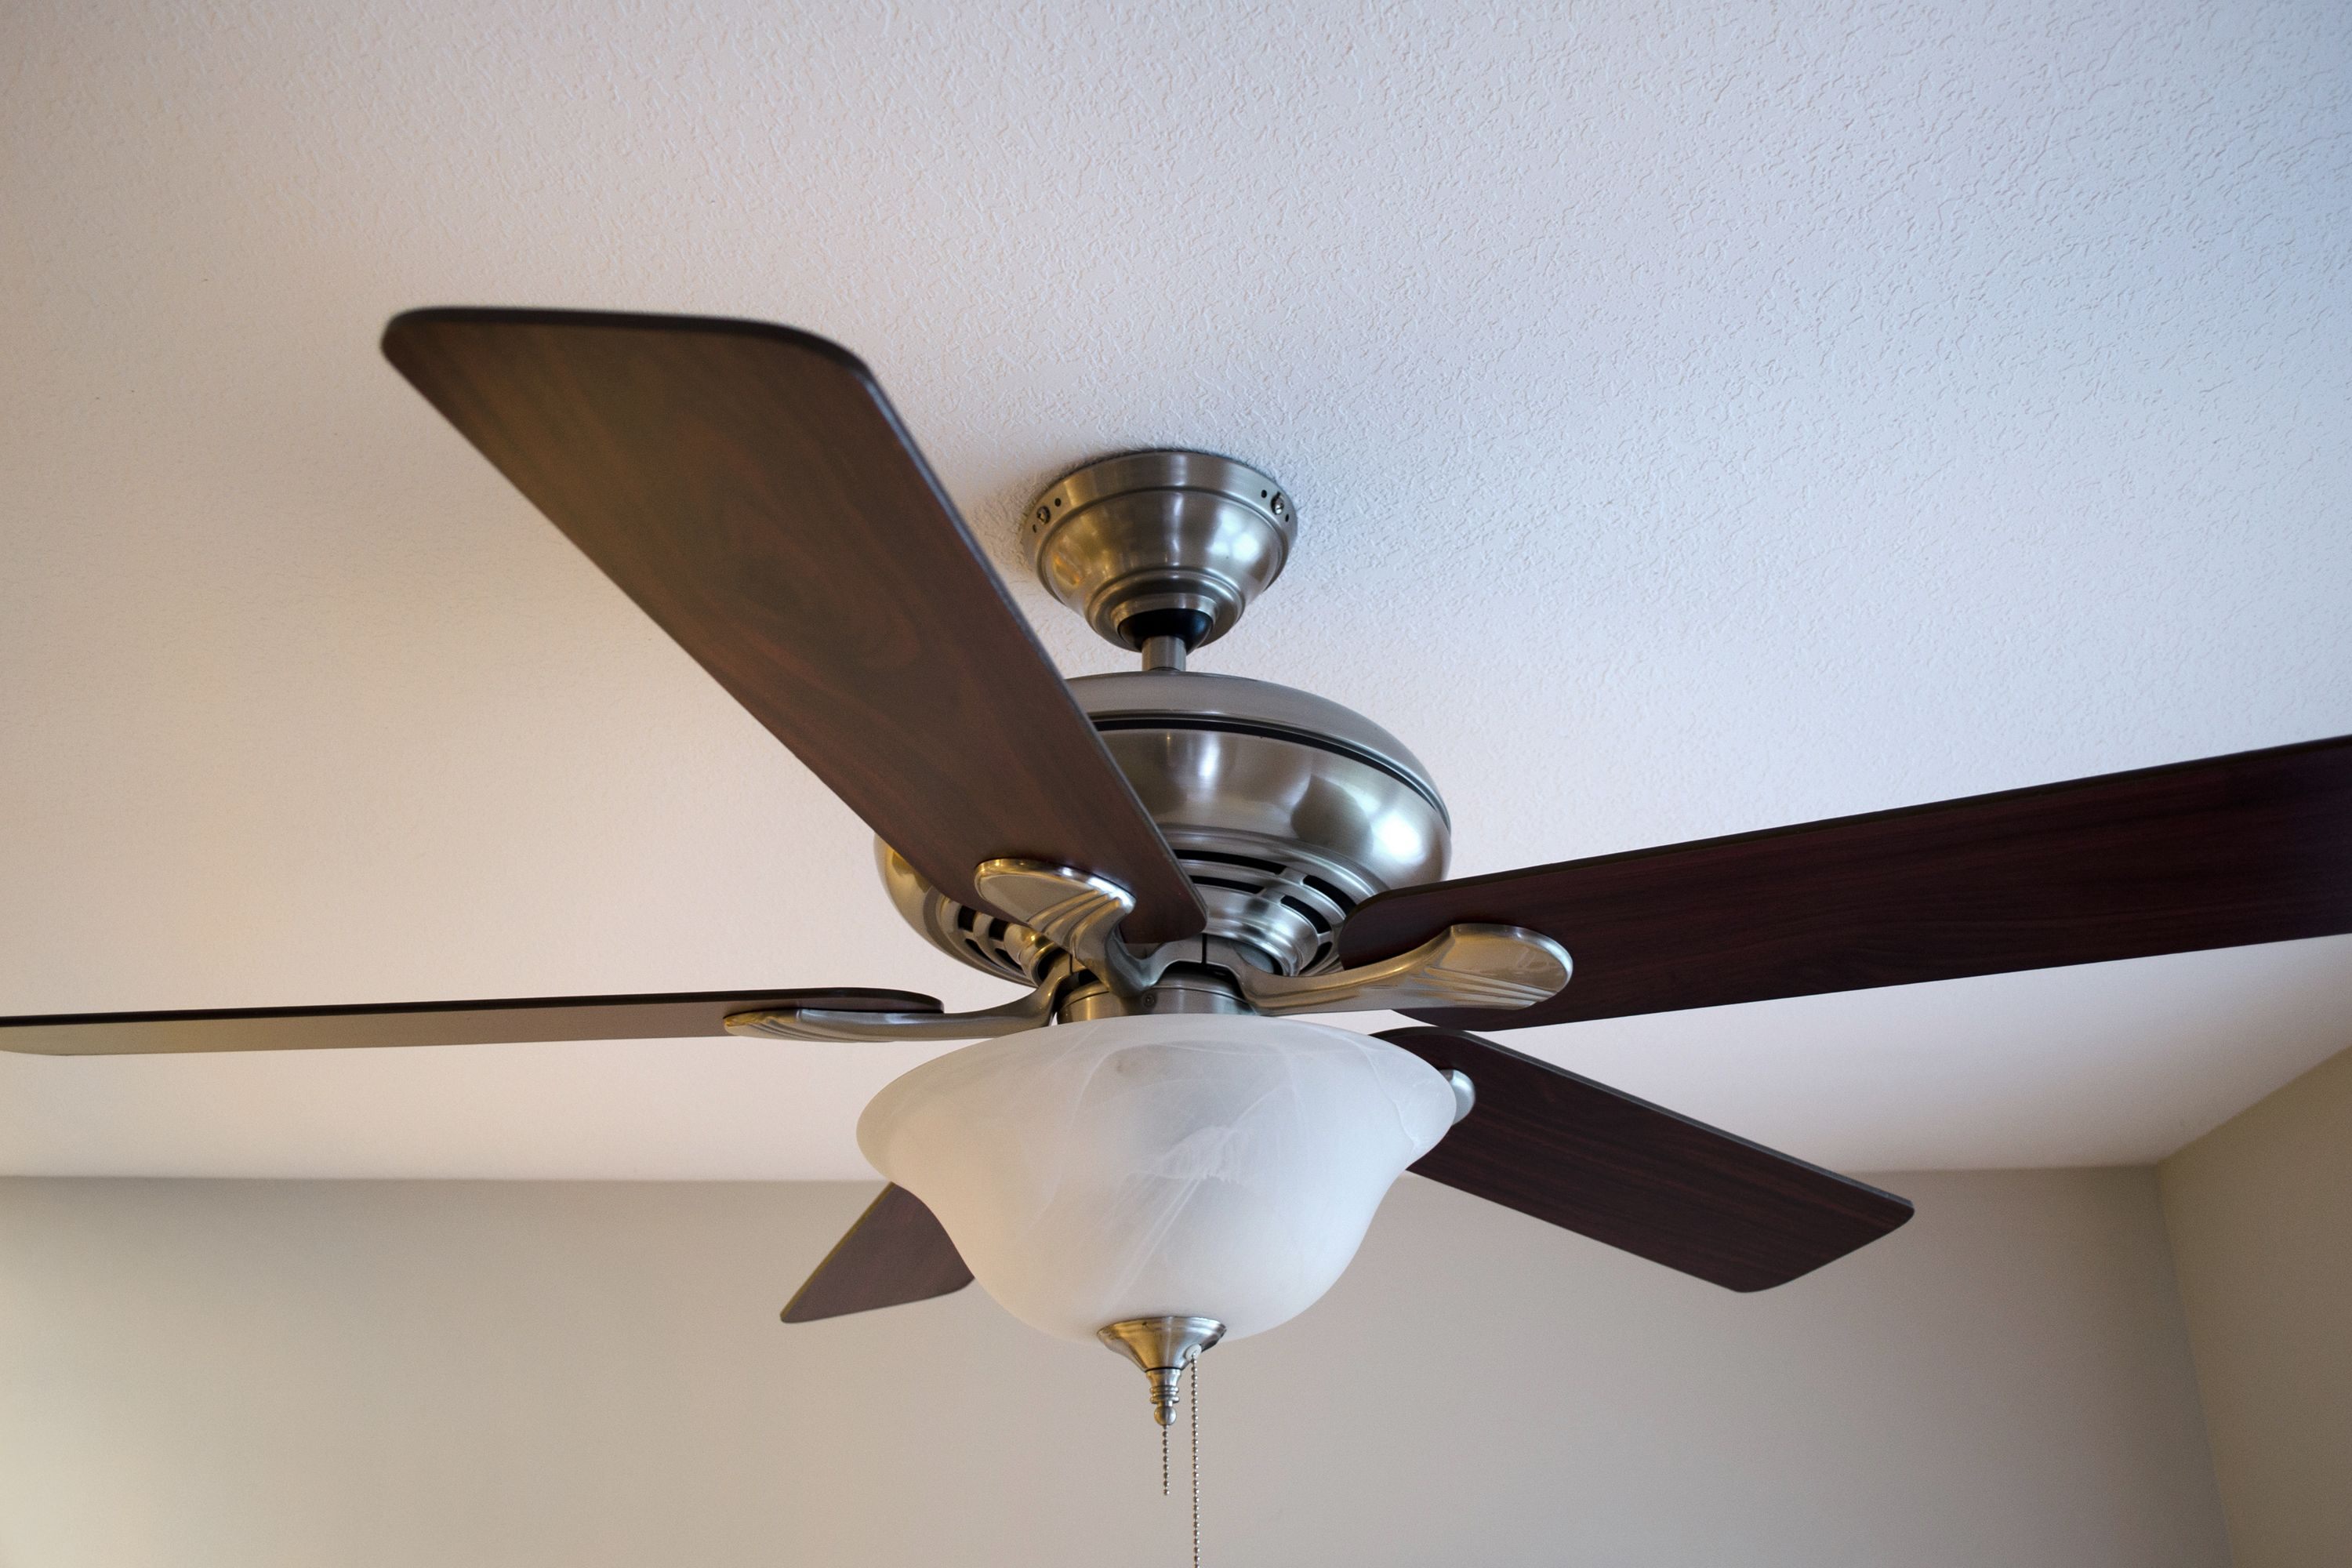 How to fix a clicking ceiling fan